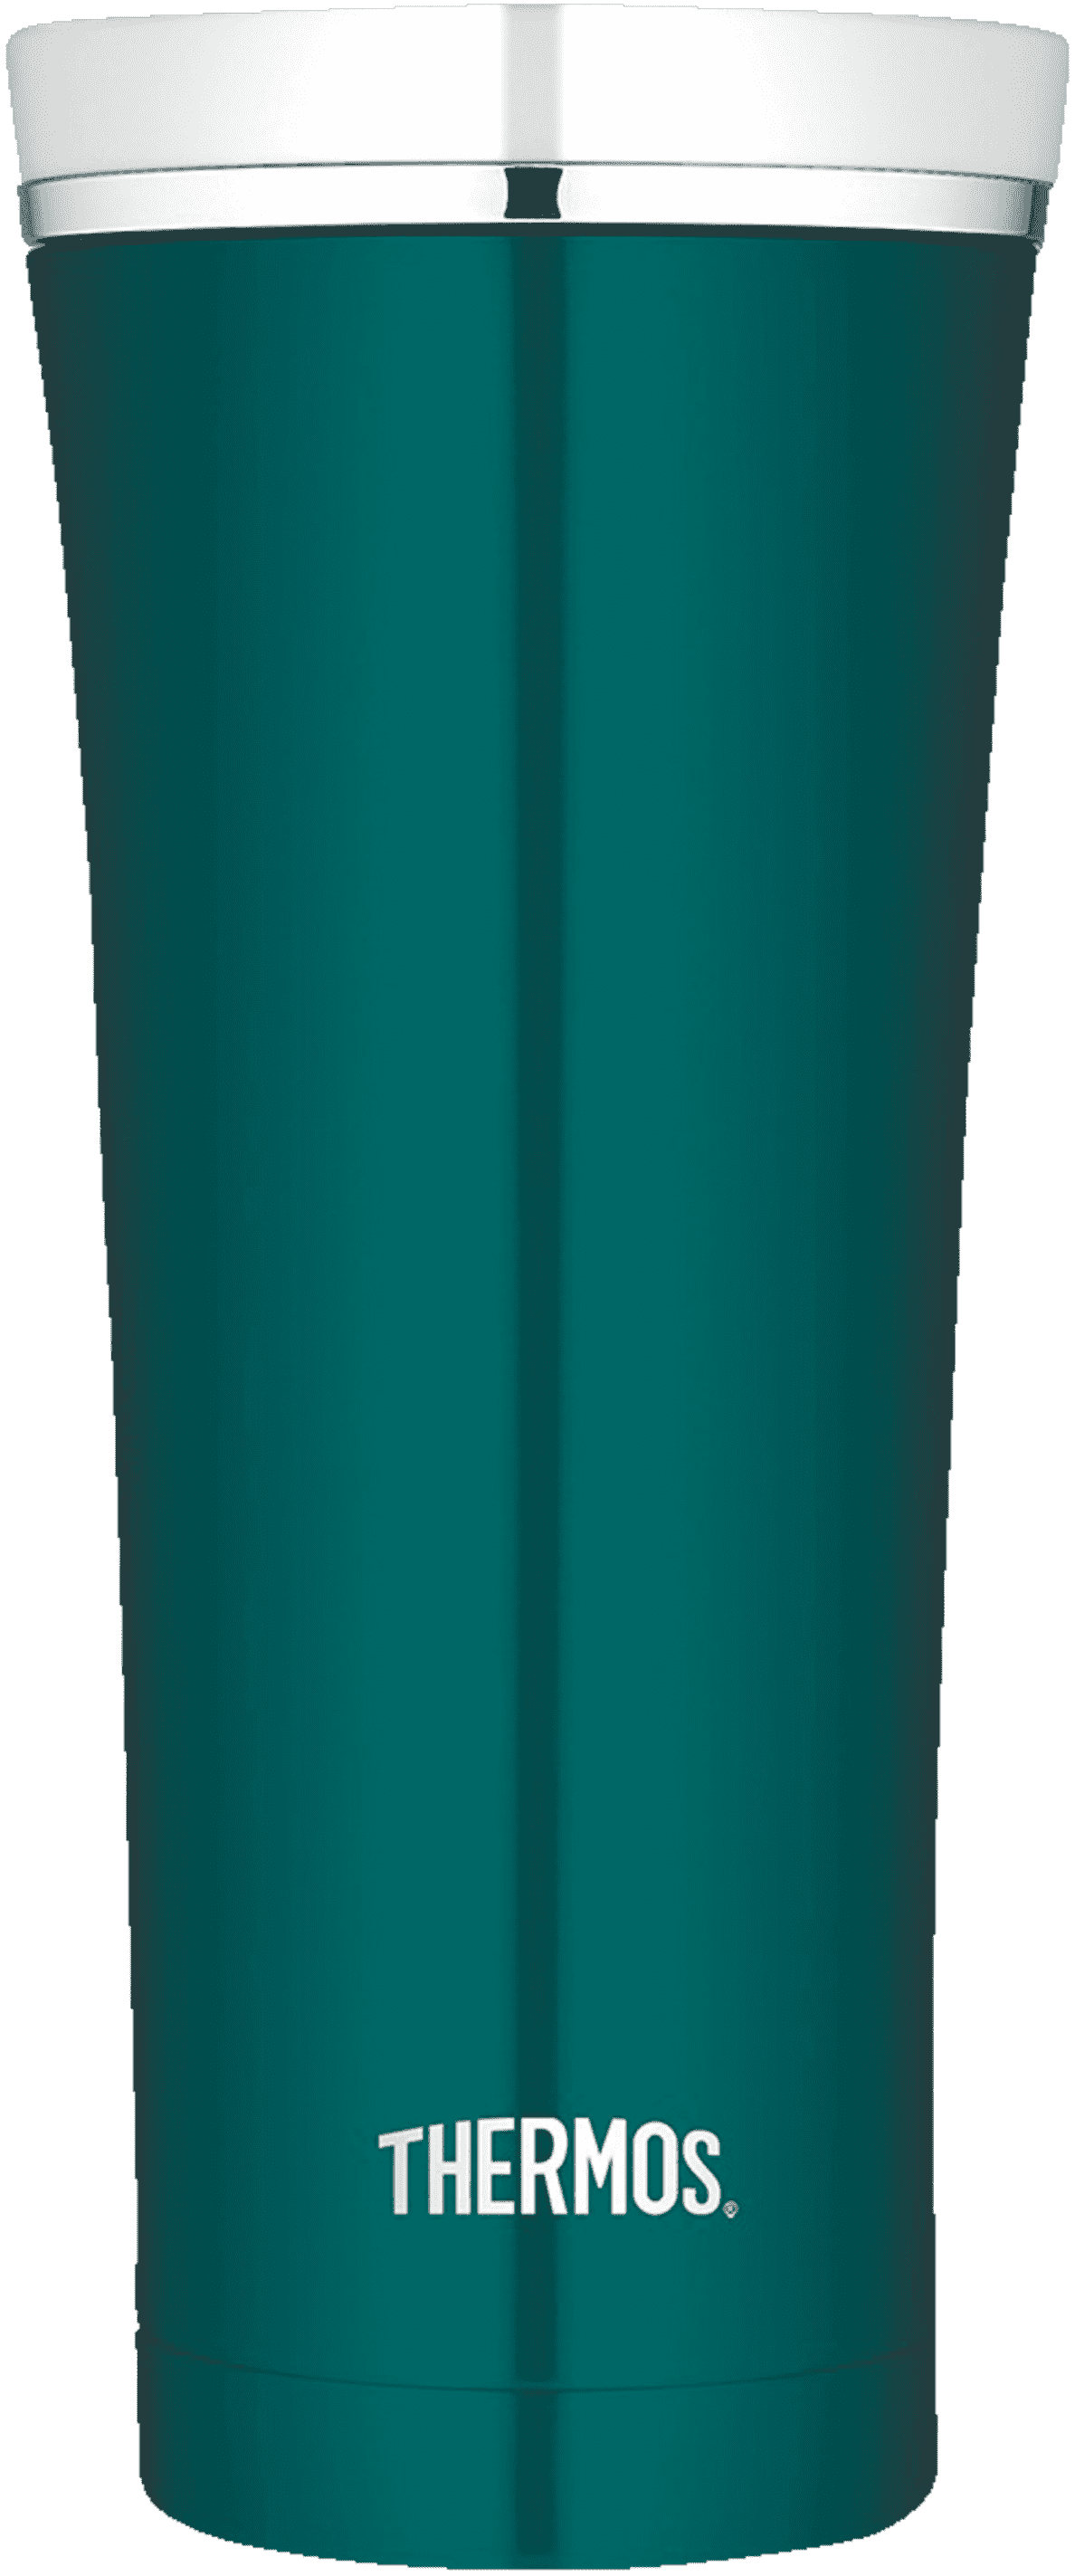 THERMOS 4004.255.047 Premium Thermobecher in Teal/Weiß